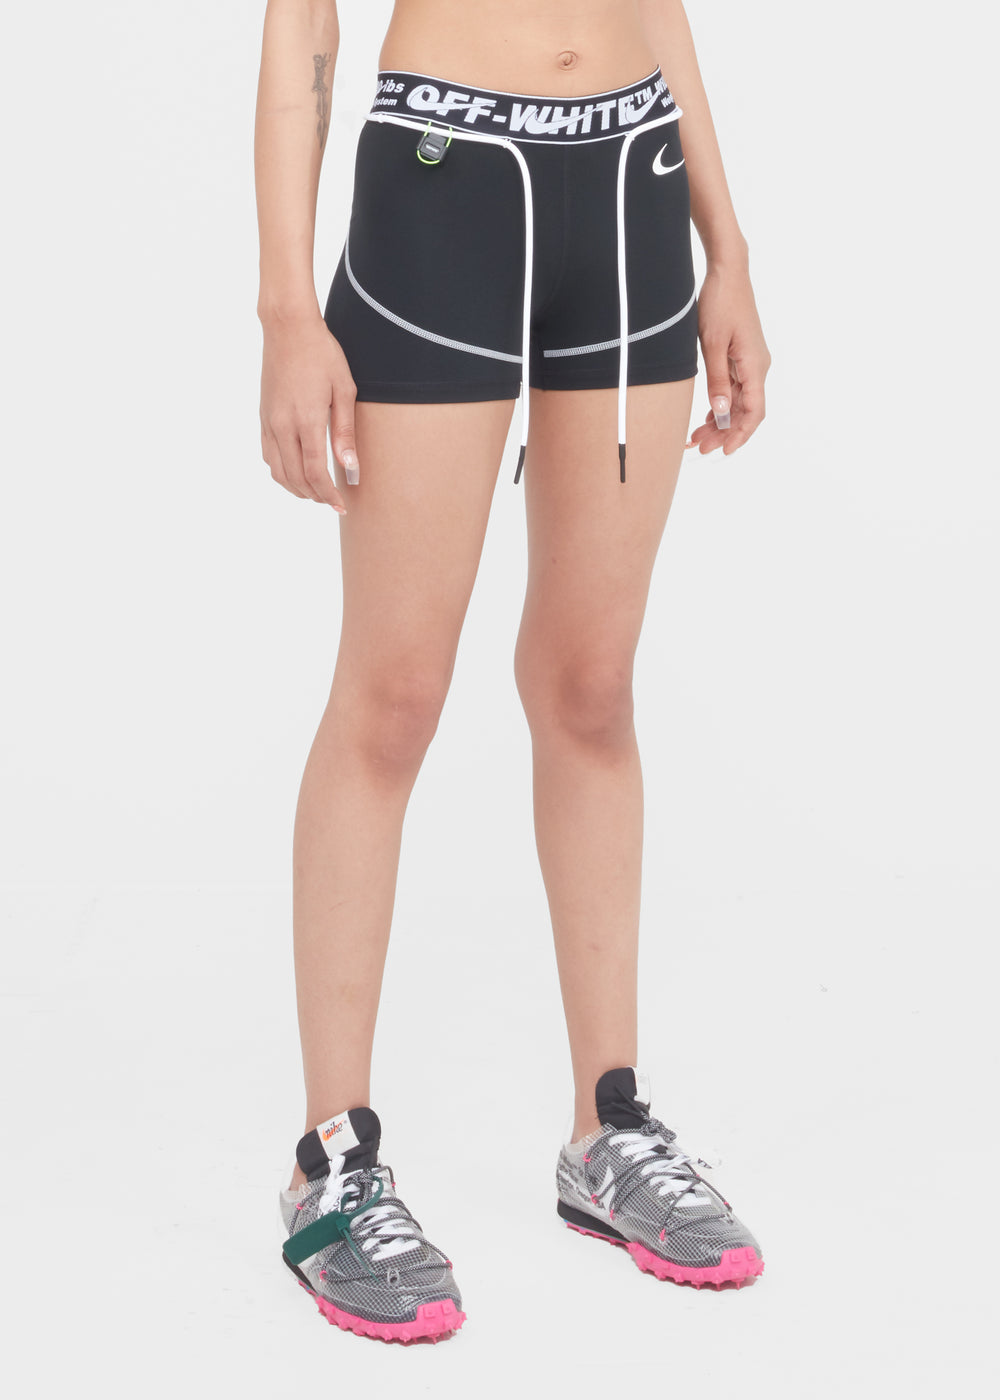 w-nike-ow-shorts-cn5575-010-blk-2